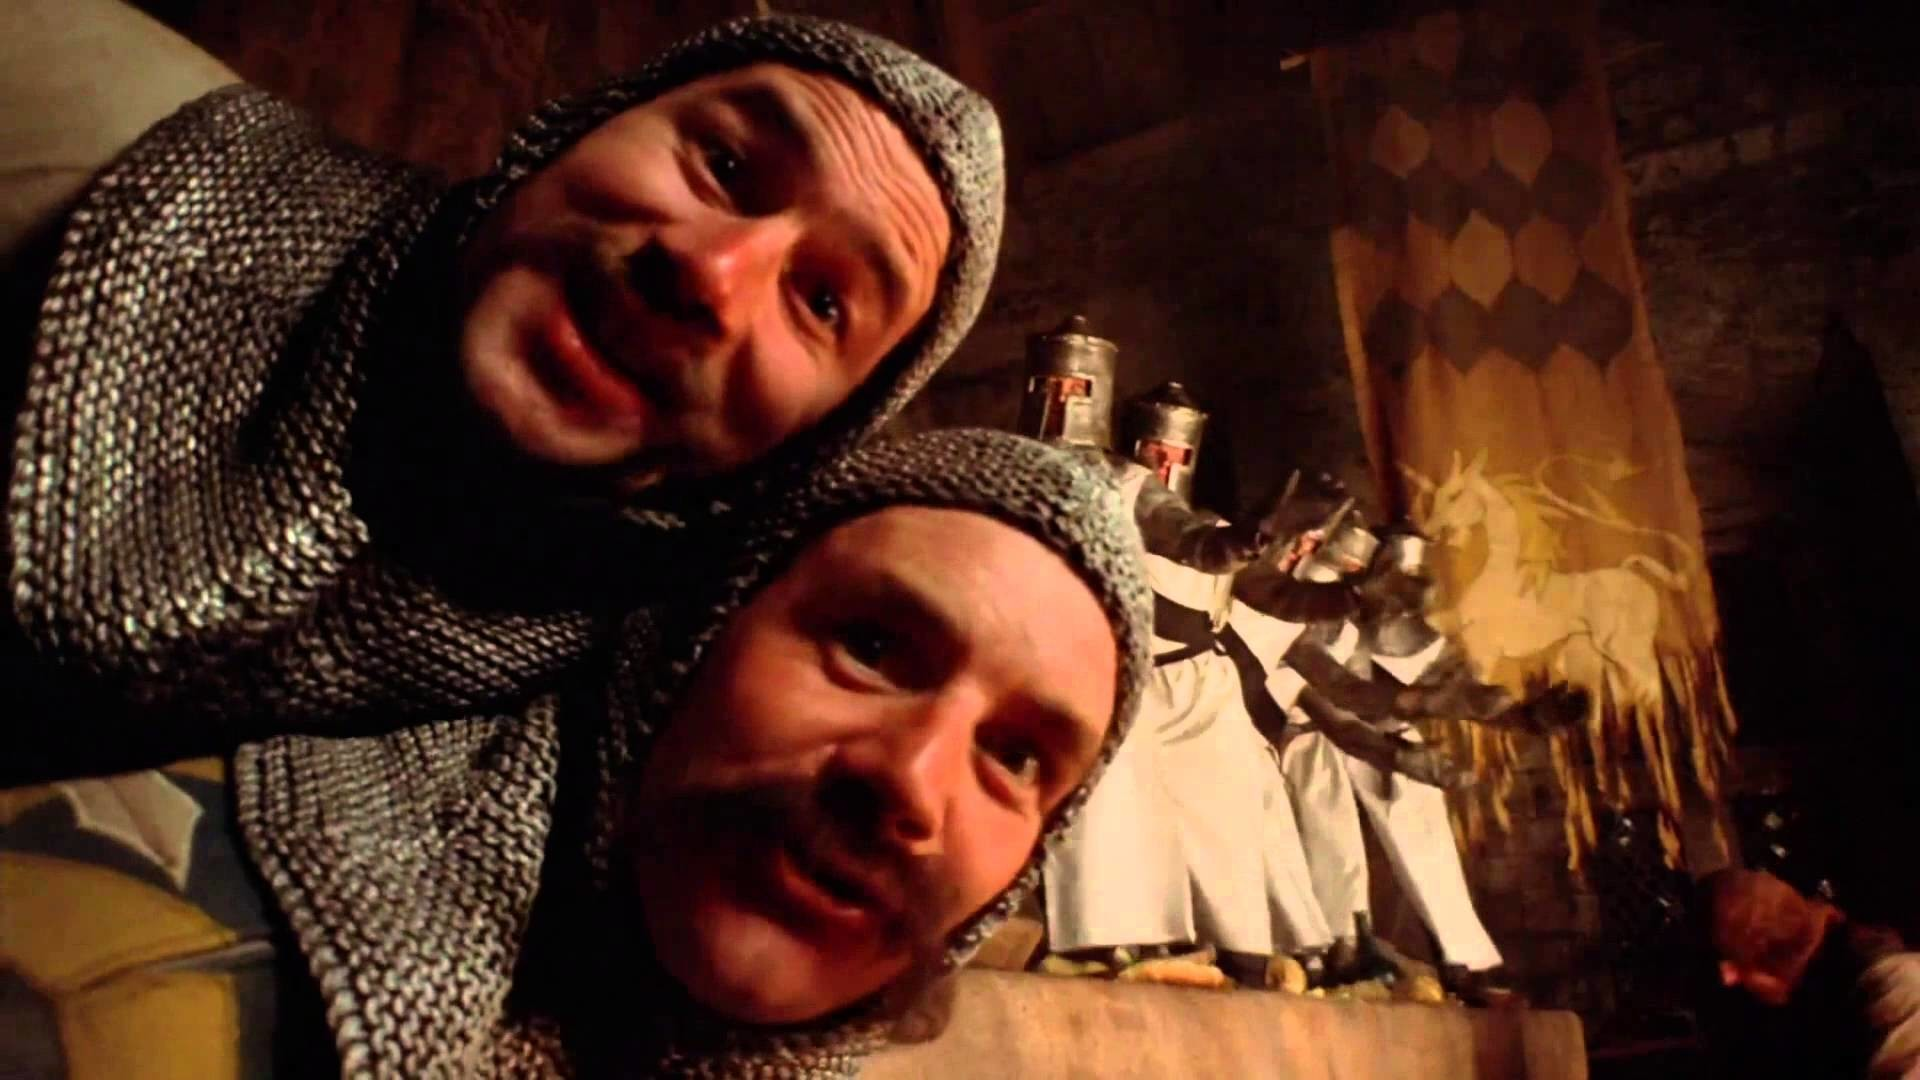 Camelot (Knights of the Round Table) [HD] – Monty Python and the Holy Grail  – YouTube